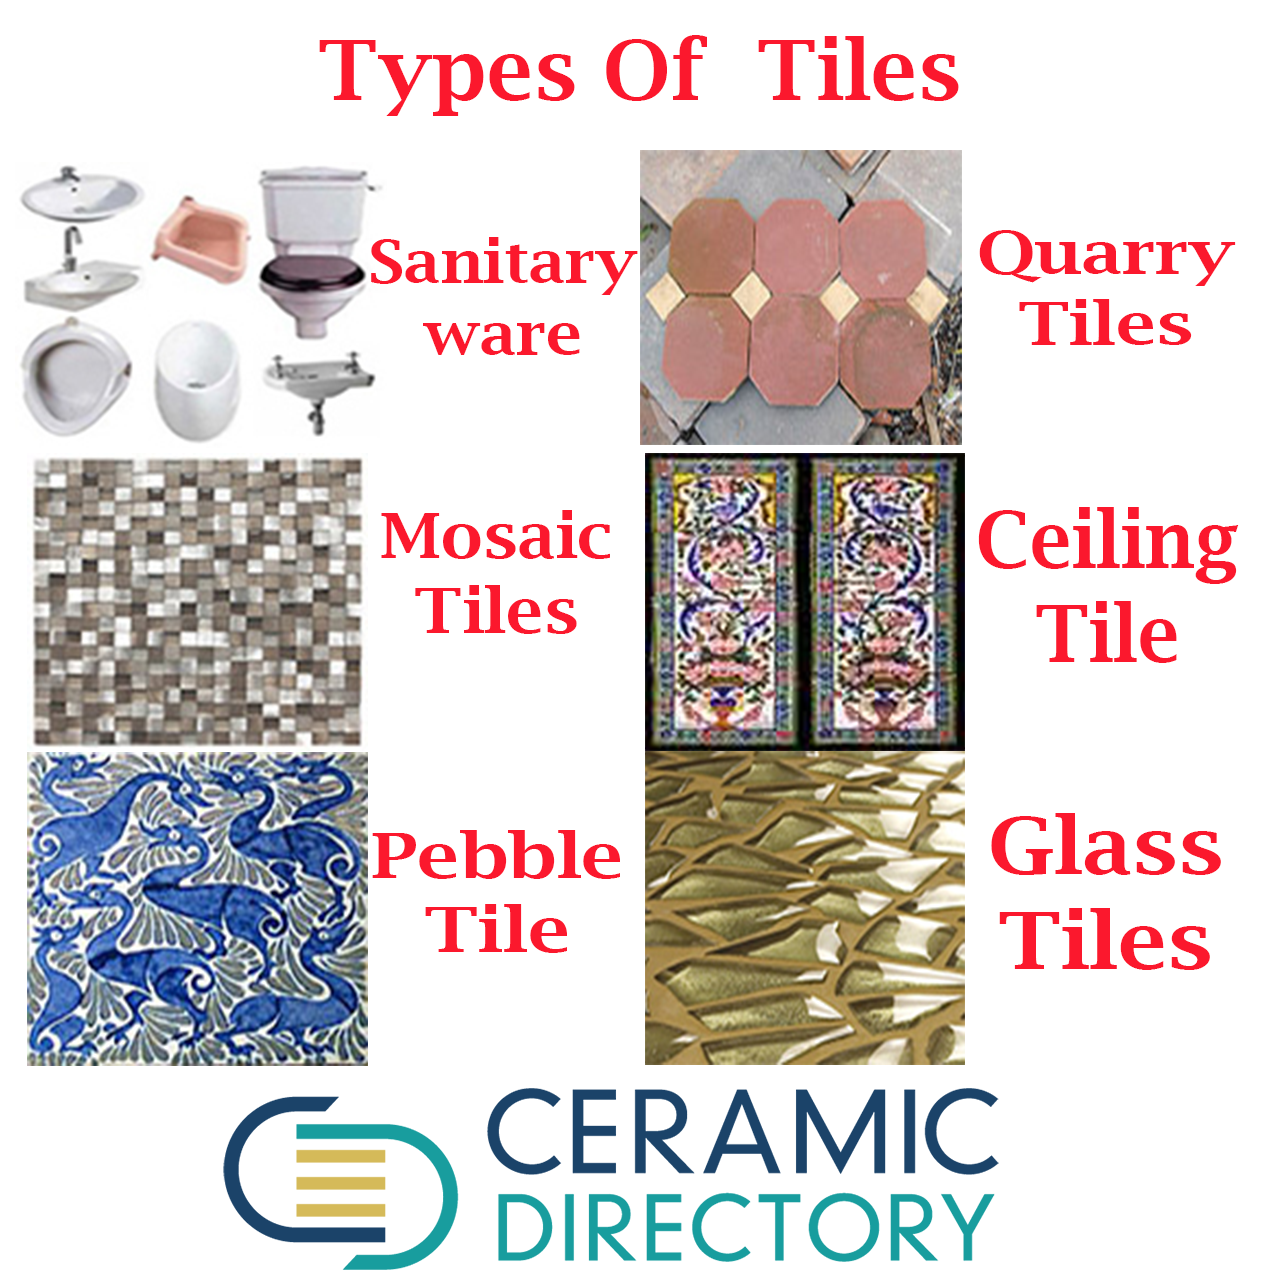 Ceramic Directory Have A Different Types Of tile Like Sanitary ...